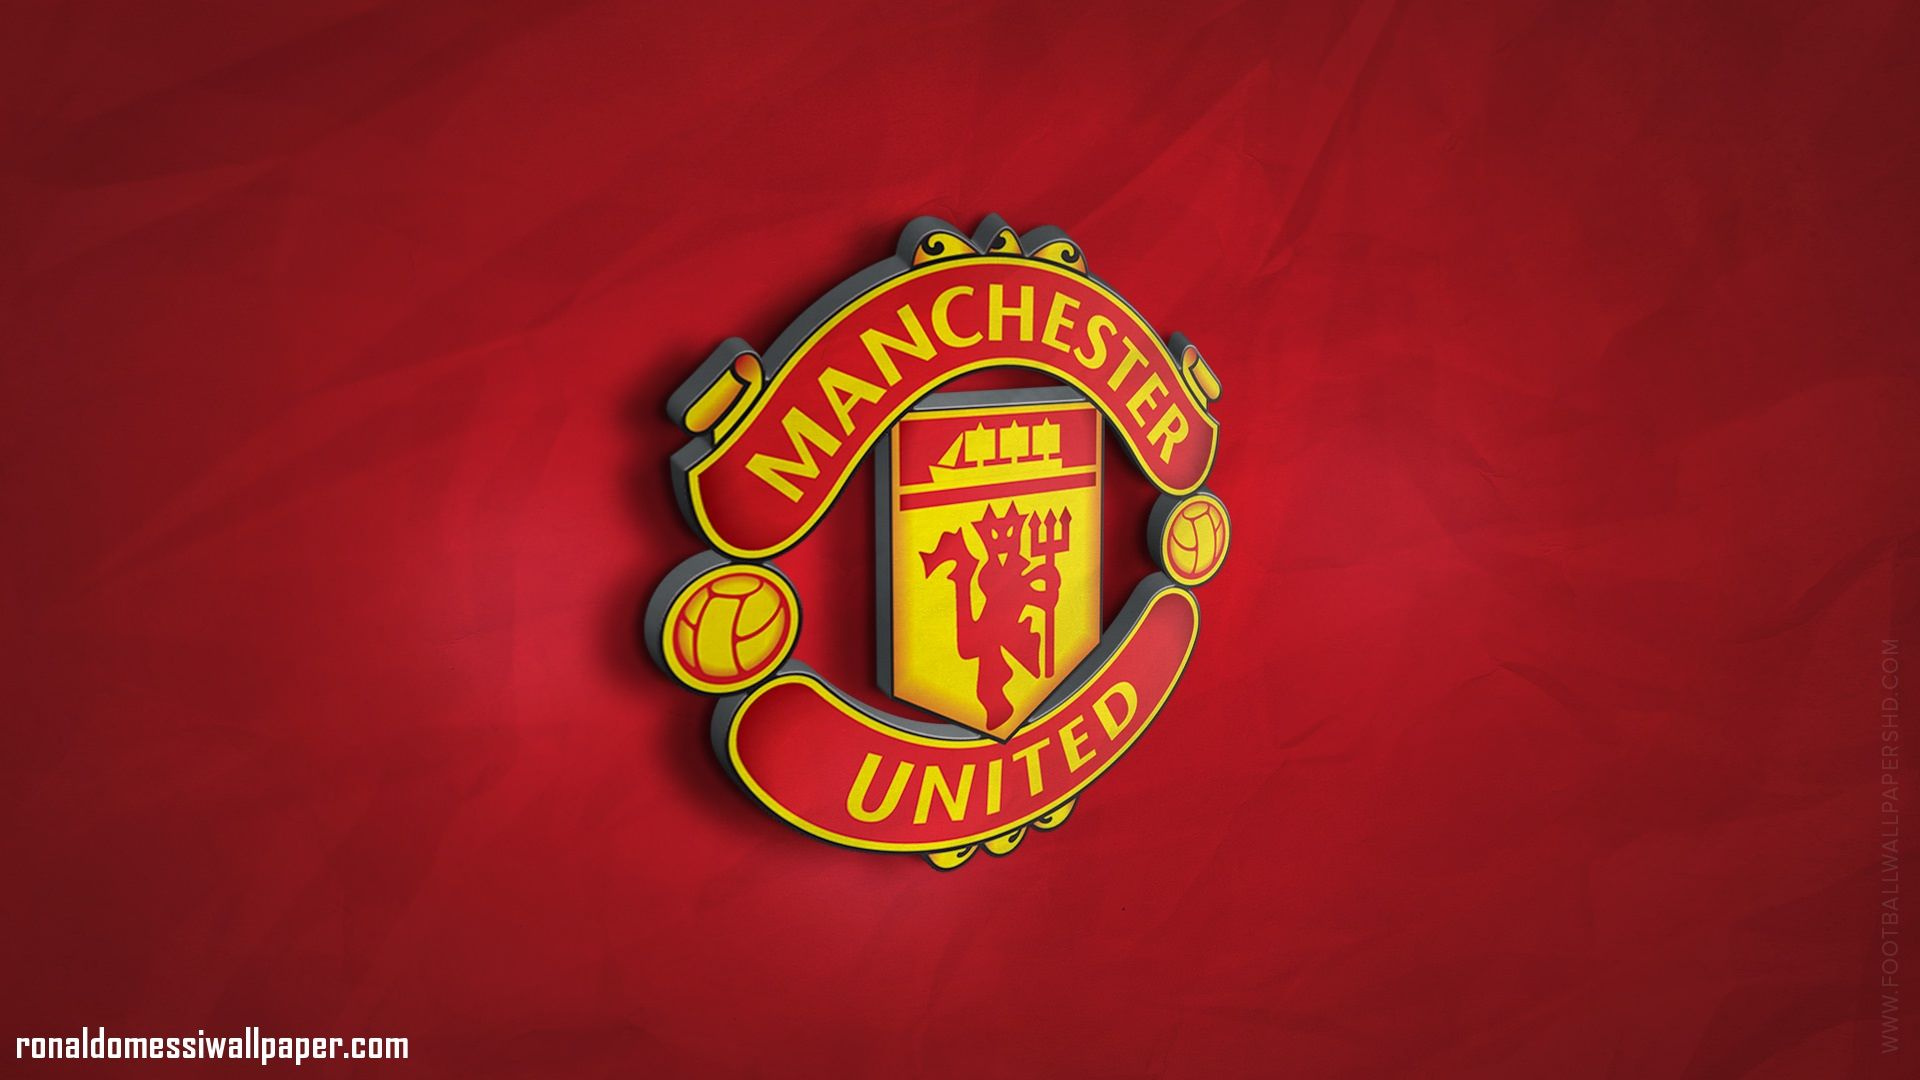 Manchester United Hd Wallpapers Group 88 – Ronaldo Messi Wallpaper